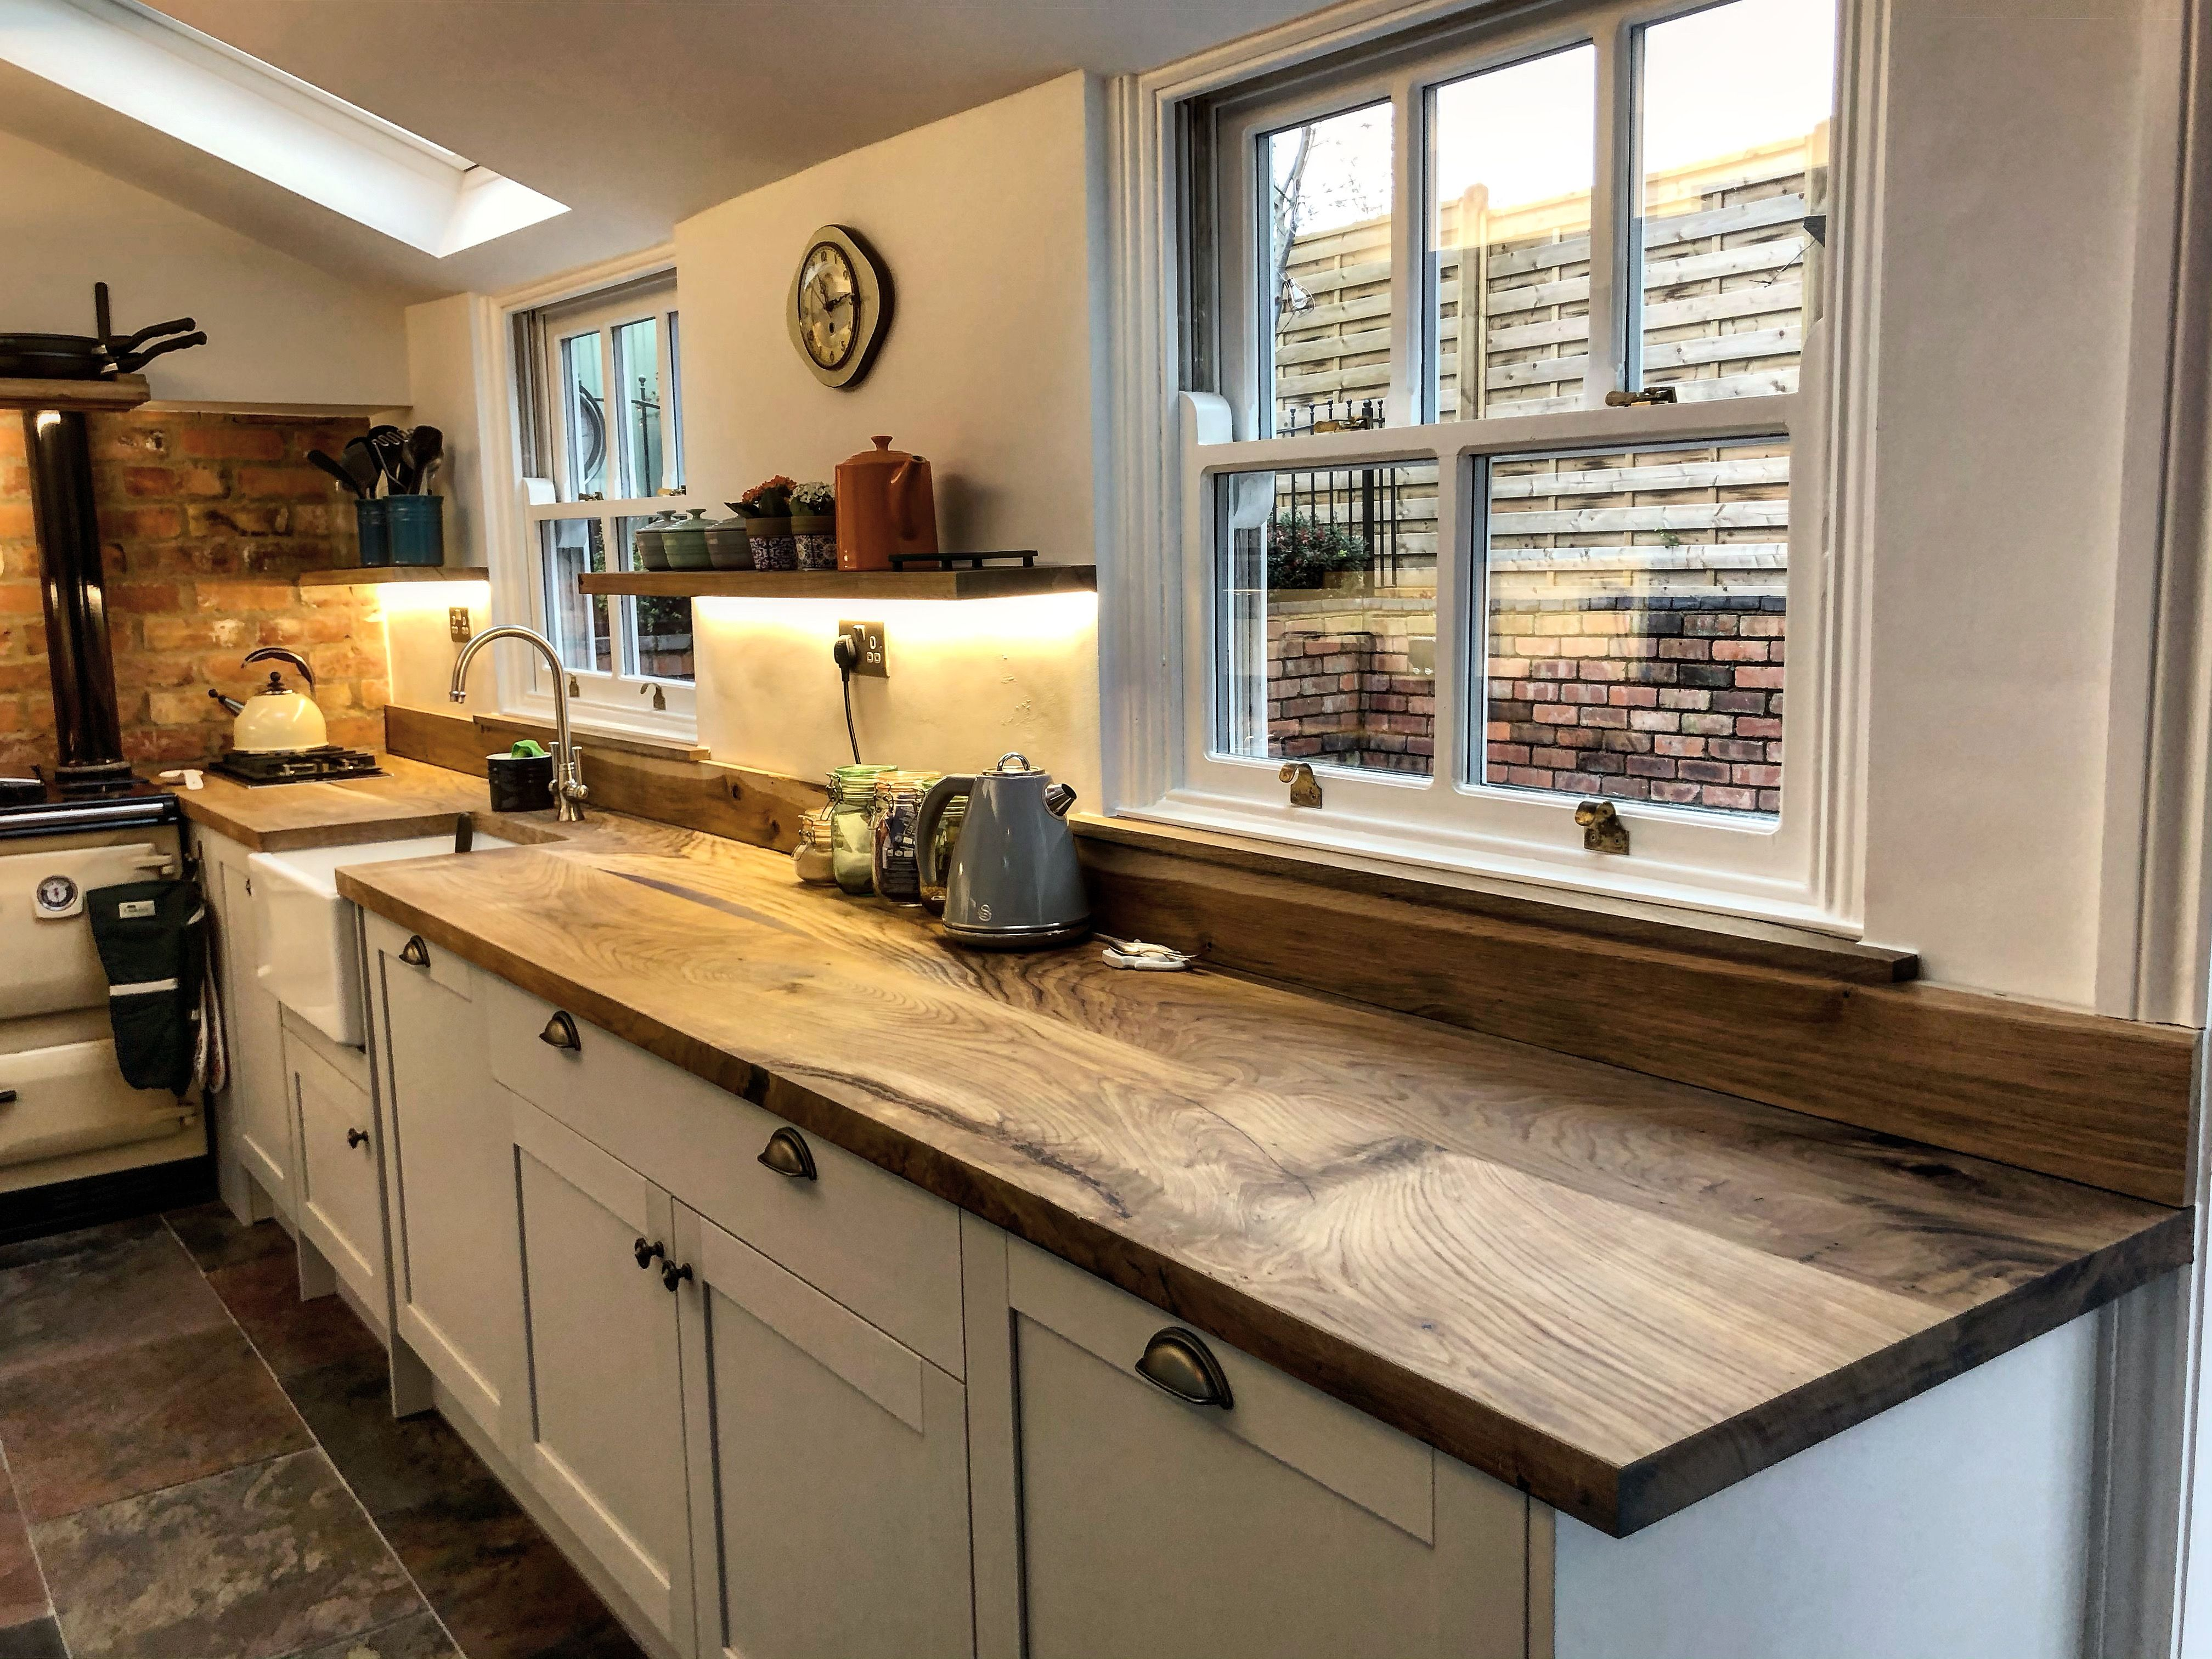 Solid Wood Worktops by Earthy Timber Wood worktop, Small